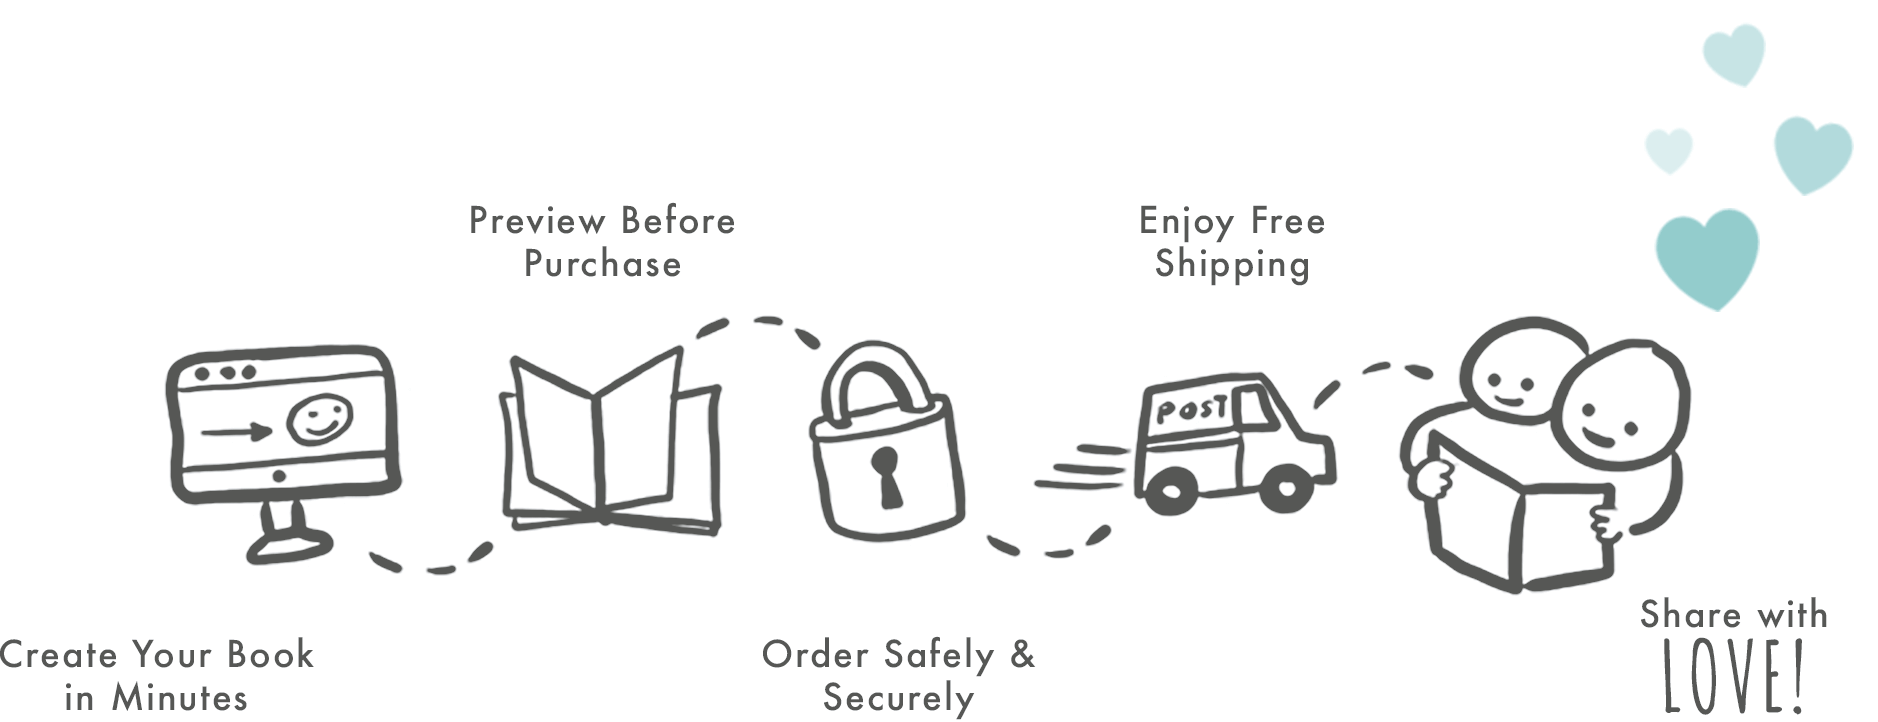 Hand-drawn illustration showing how Read Your Story works.  Step 1: Create your book.  Step 2: Preview and purchase. Step 3: Place your order. Step 4: Get free shipping. Step 5: Receive and share your book with love.